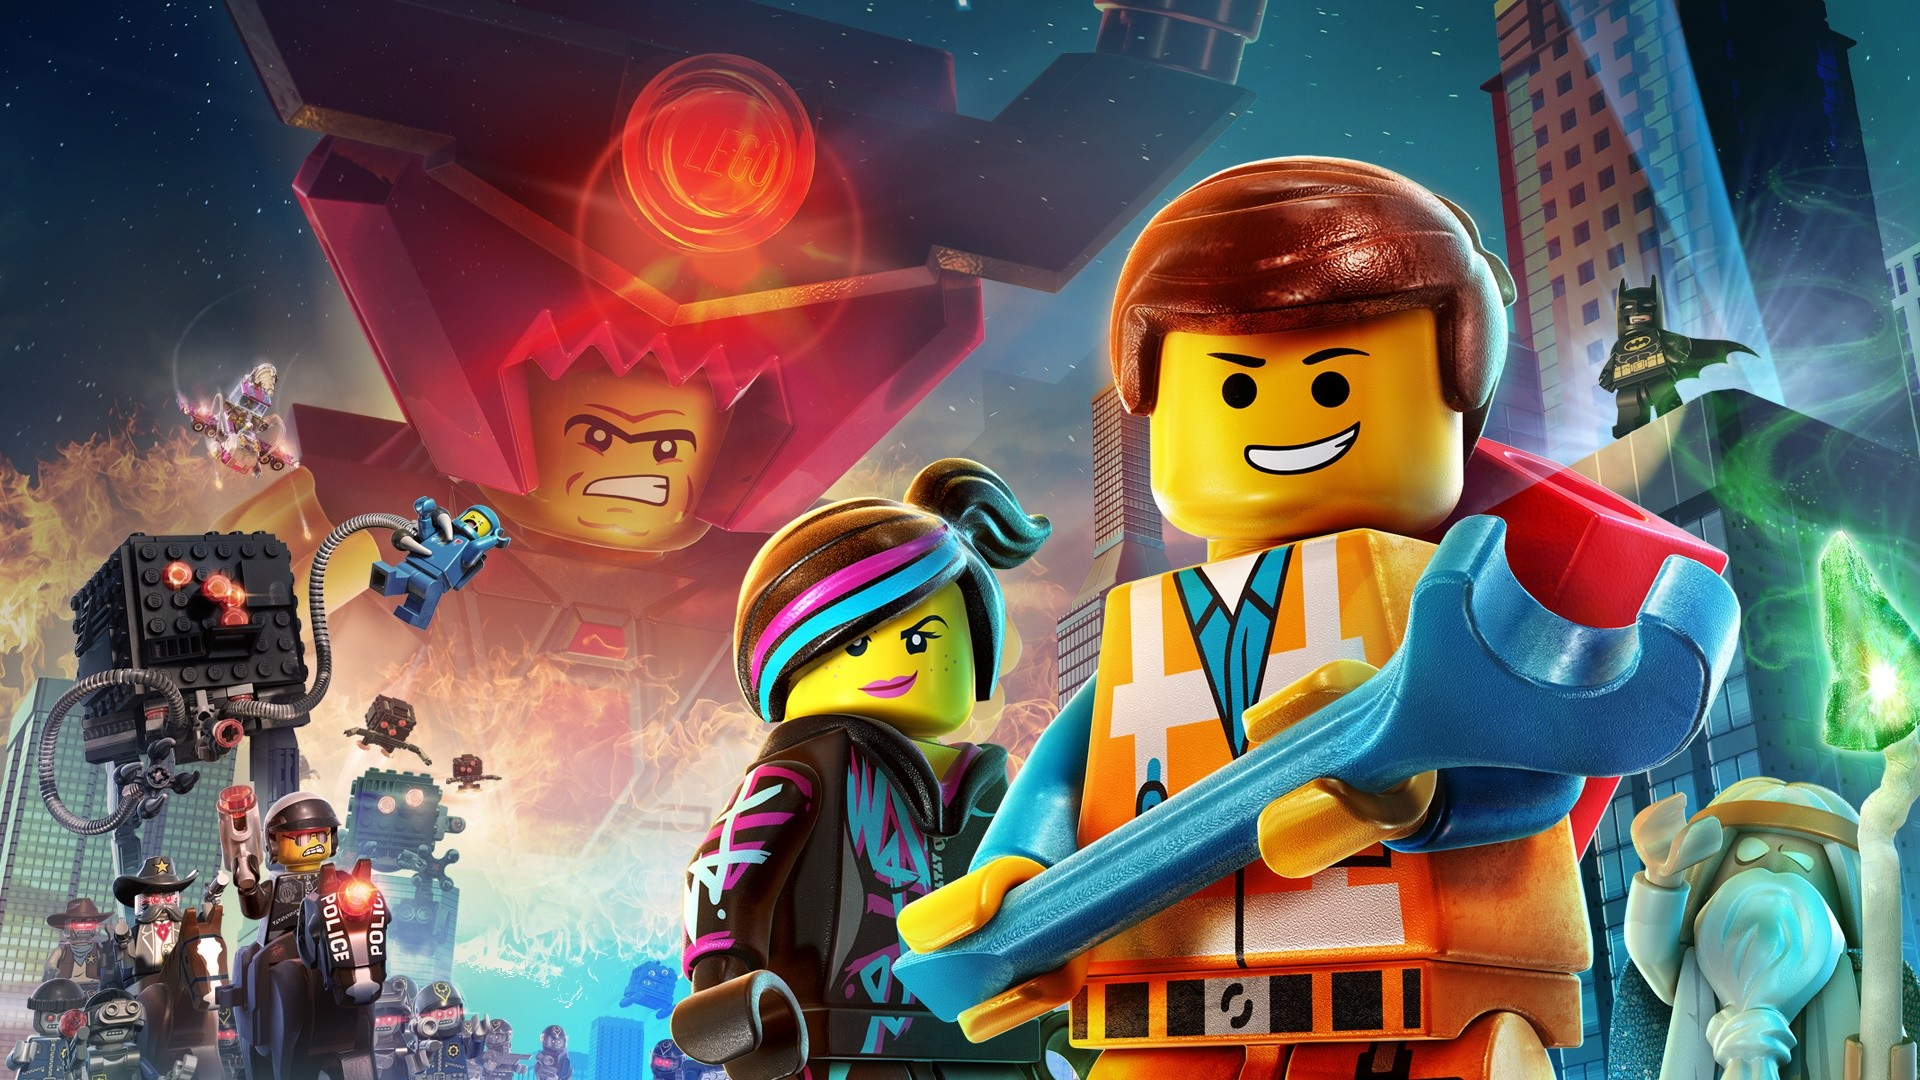 1920x1080 ... Image Result For Lego Ninjago Movie ...